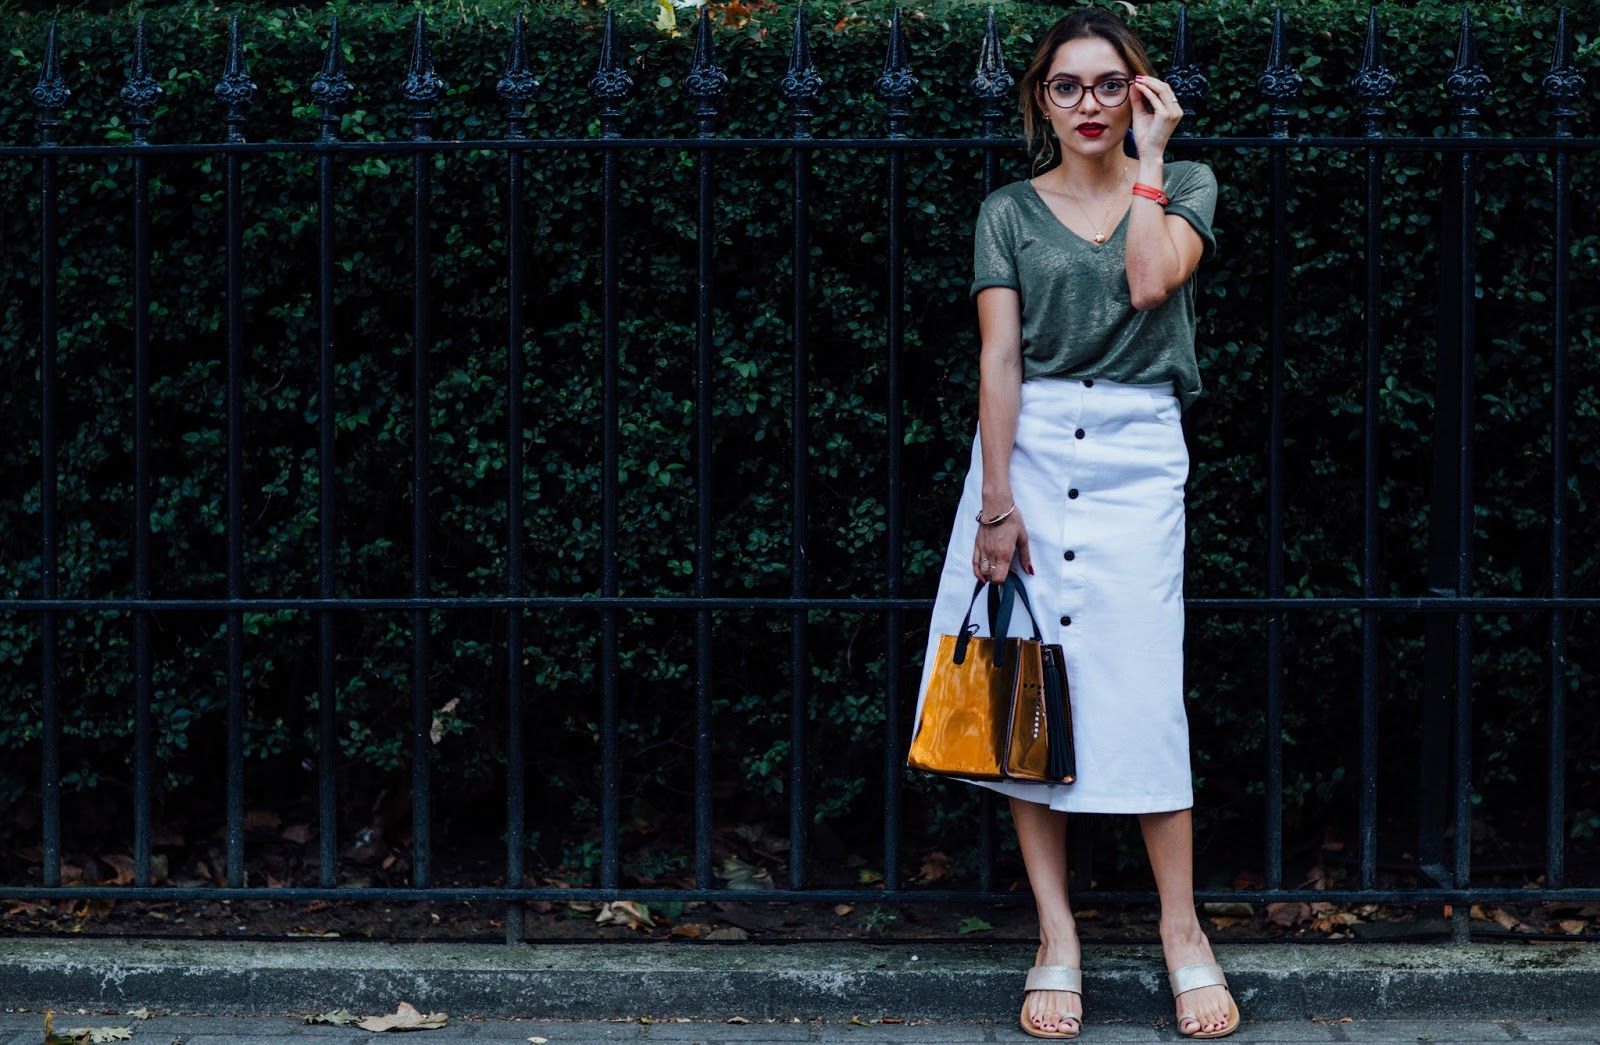 Whitney's Wonderland UK Top Luxury Fashion Blogger Influencer's 5 tips on how to transform a basic look wearing And Other Stories button denim skirt and Hermes orange hapy leather bracelet.